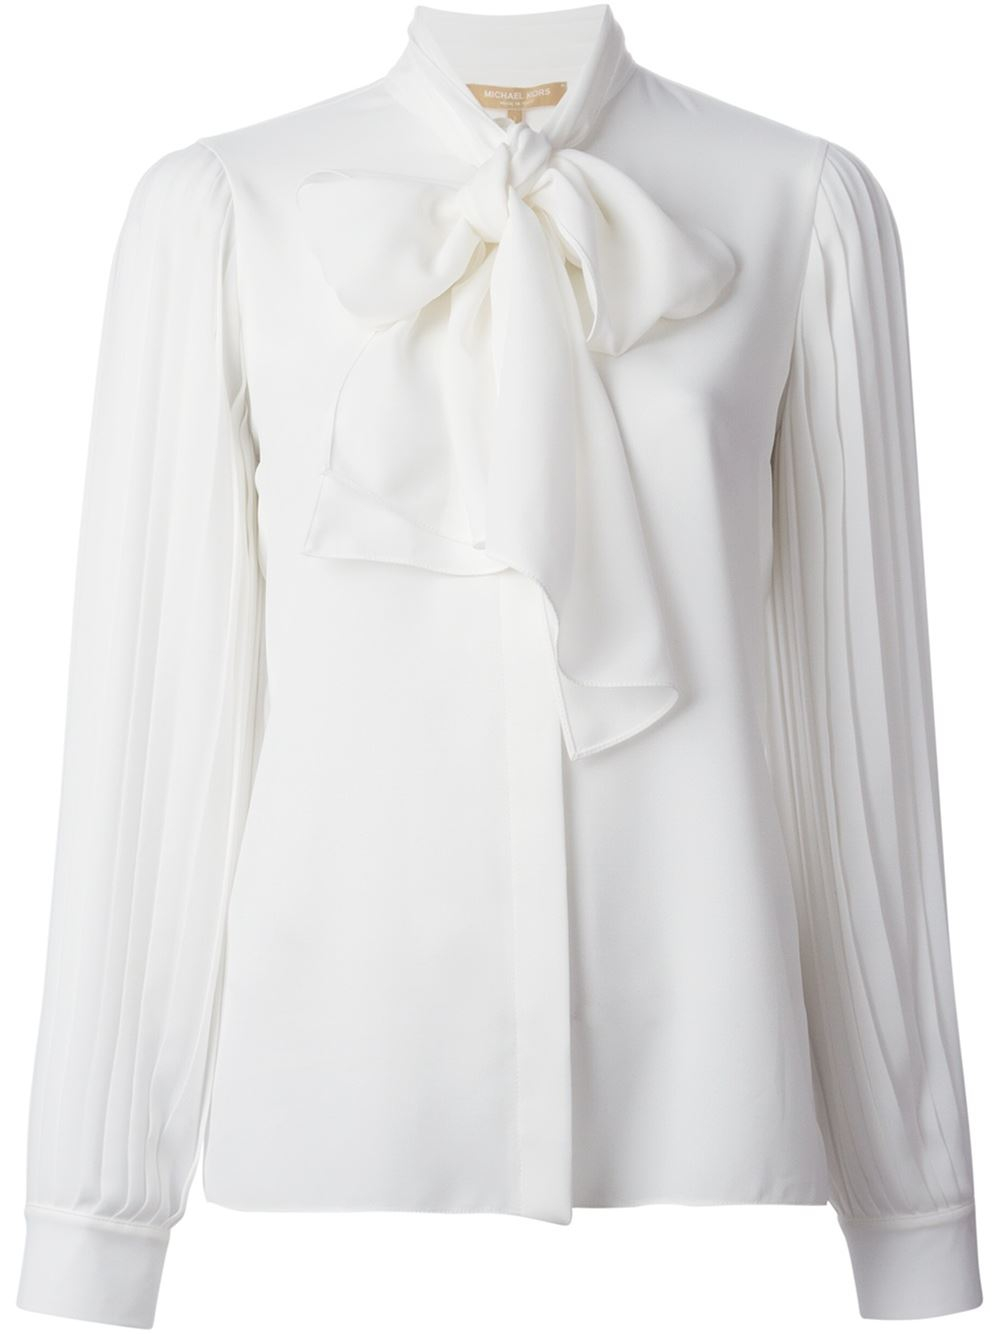 Lyst - Michael Kors Tie Blouse in White 91bb1790bea30